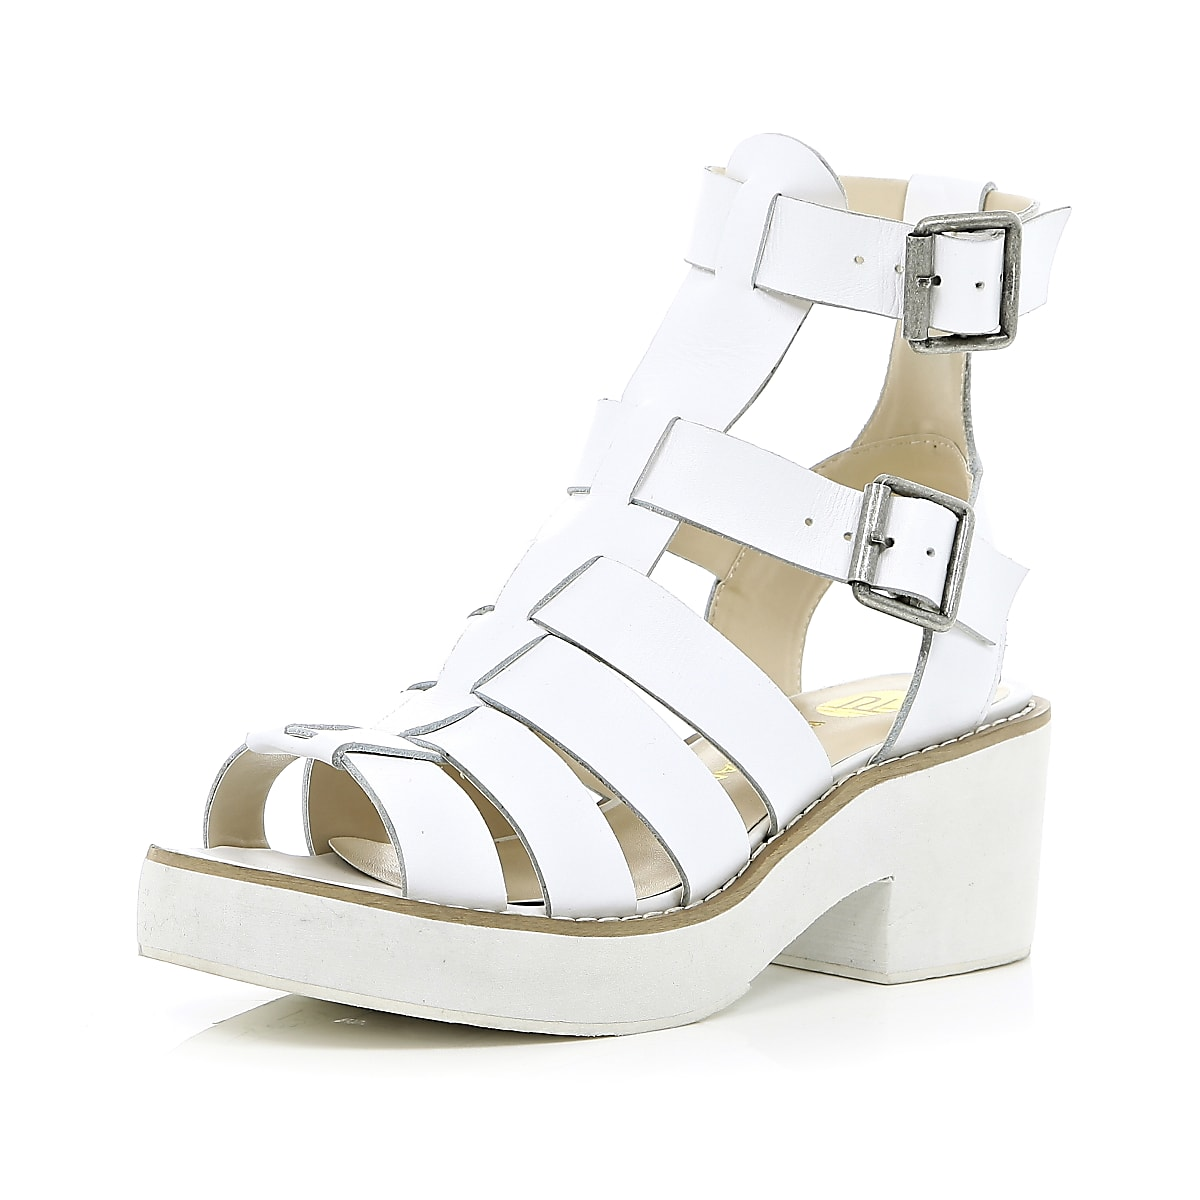 e3a7466f216 White block heel gladiator sandals - Sandals - Shoes   Boots - women